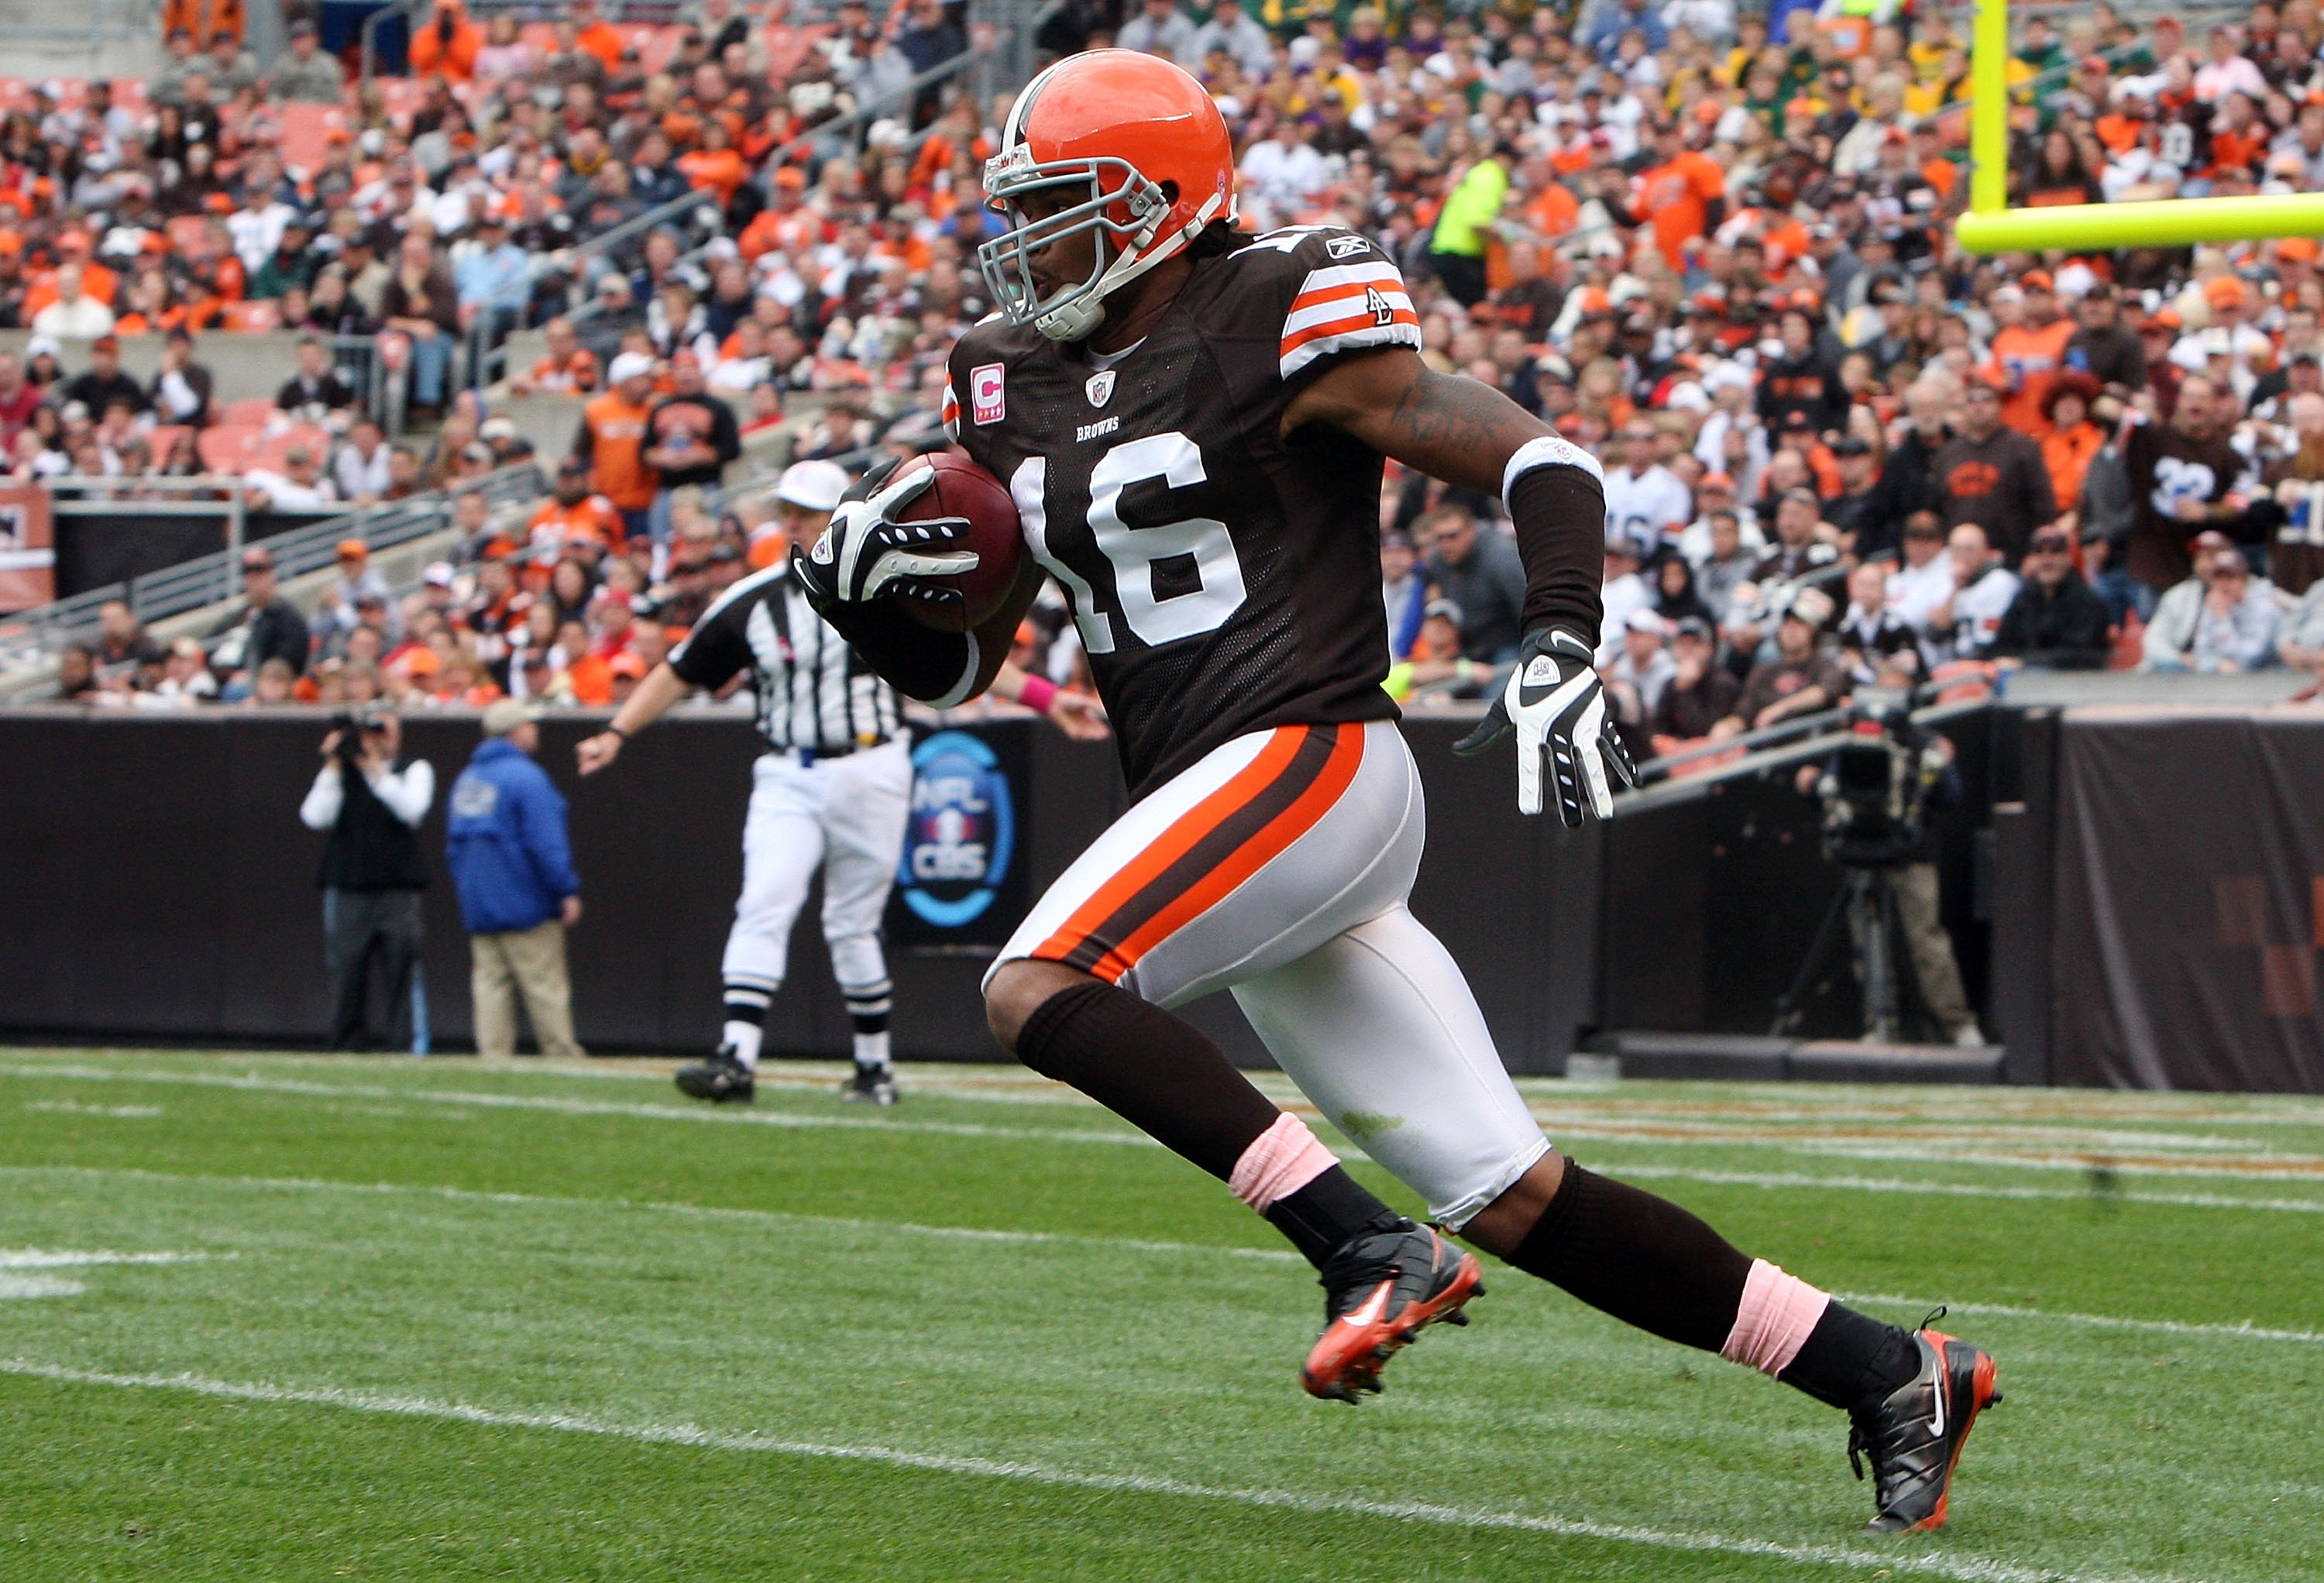 CLEVELAND - OCTOBER 04:  Joshua Cribbs #16 of the Cincinnati Bengals runs the ball against the Cleveland Browns during their game at Cleveland Browns Stadium on October 4, 2009 in Cleveland, Ohio. The Bengals defeated the Browns 23-20 in overtime.  (Photo